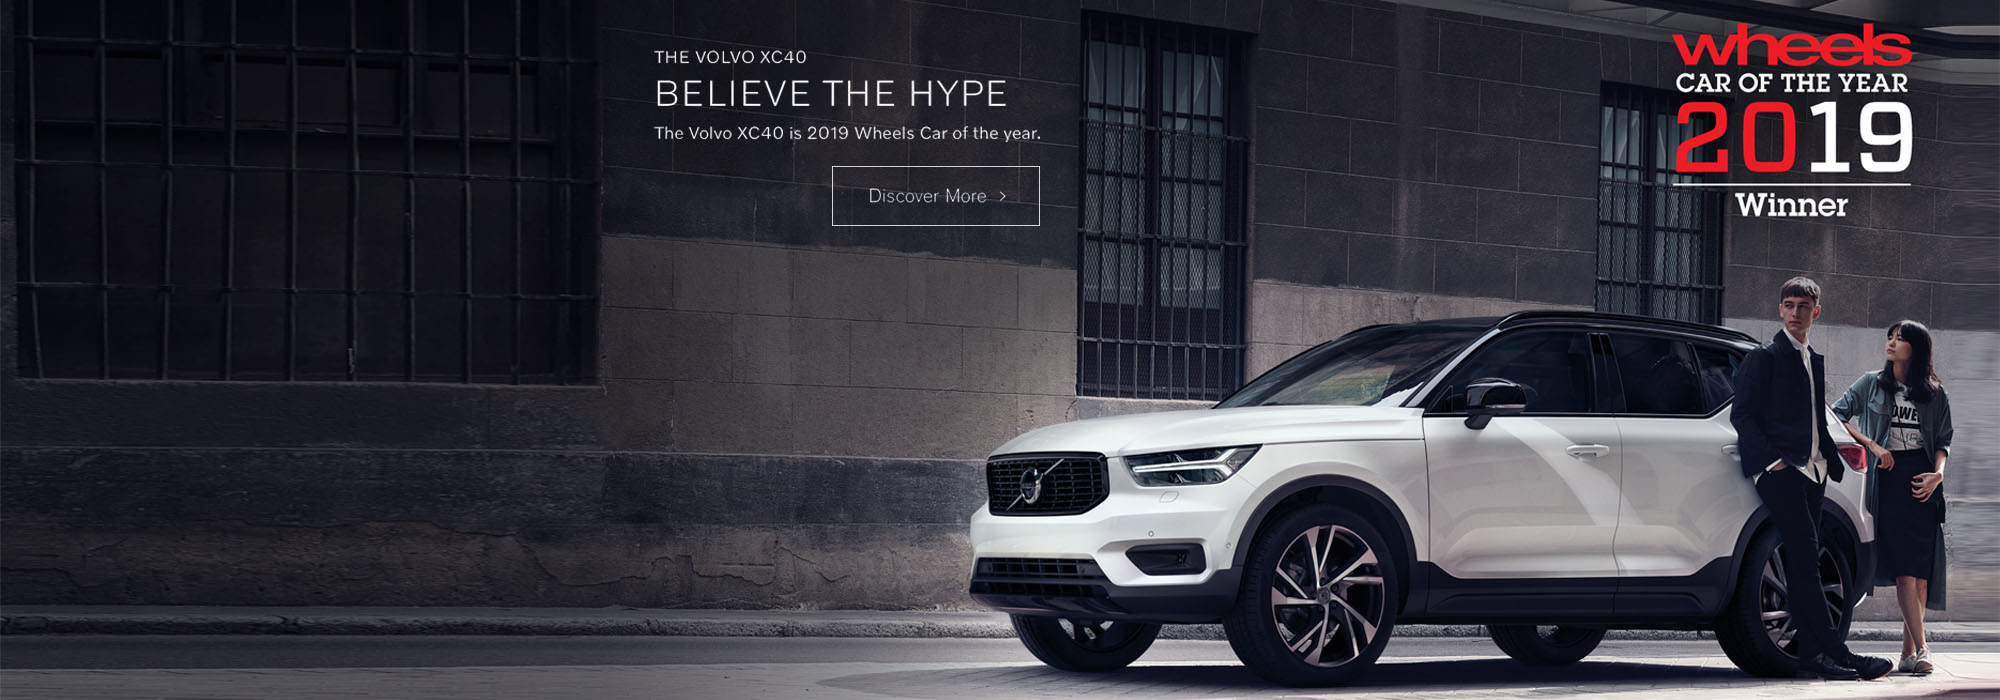 Volvo Dealer Geelong - Volvo Cars Geelong